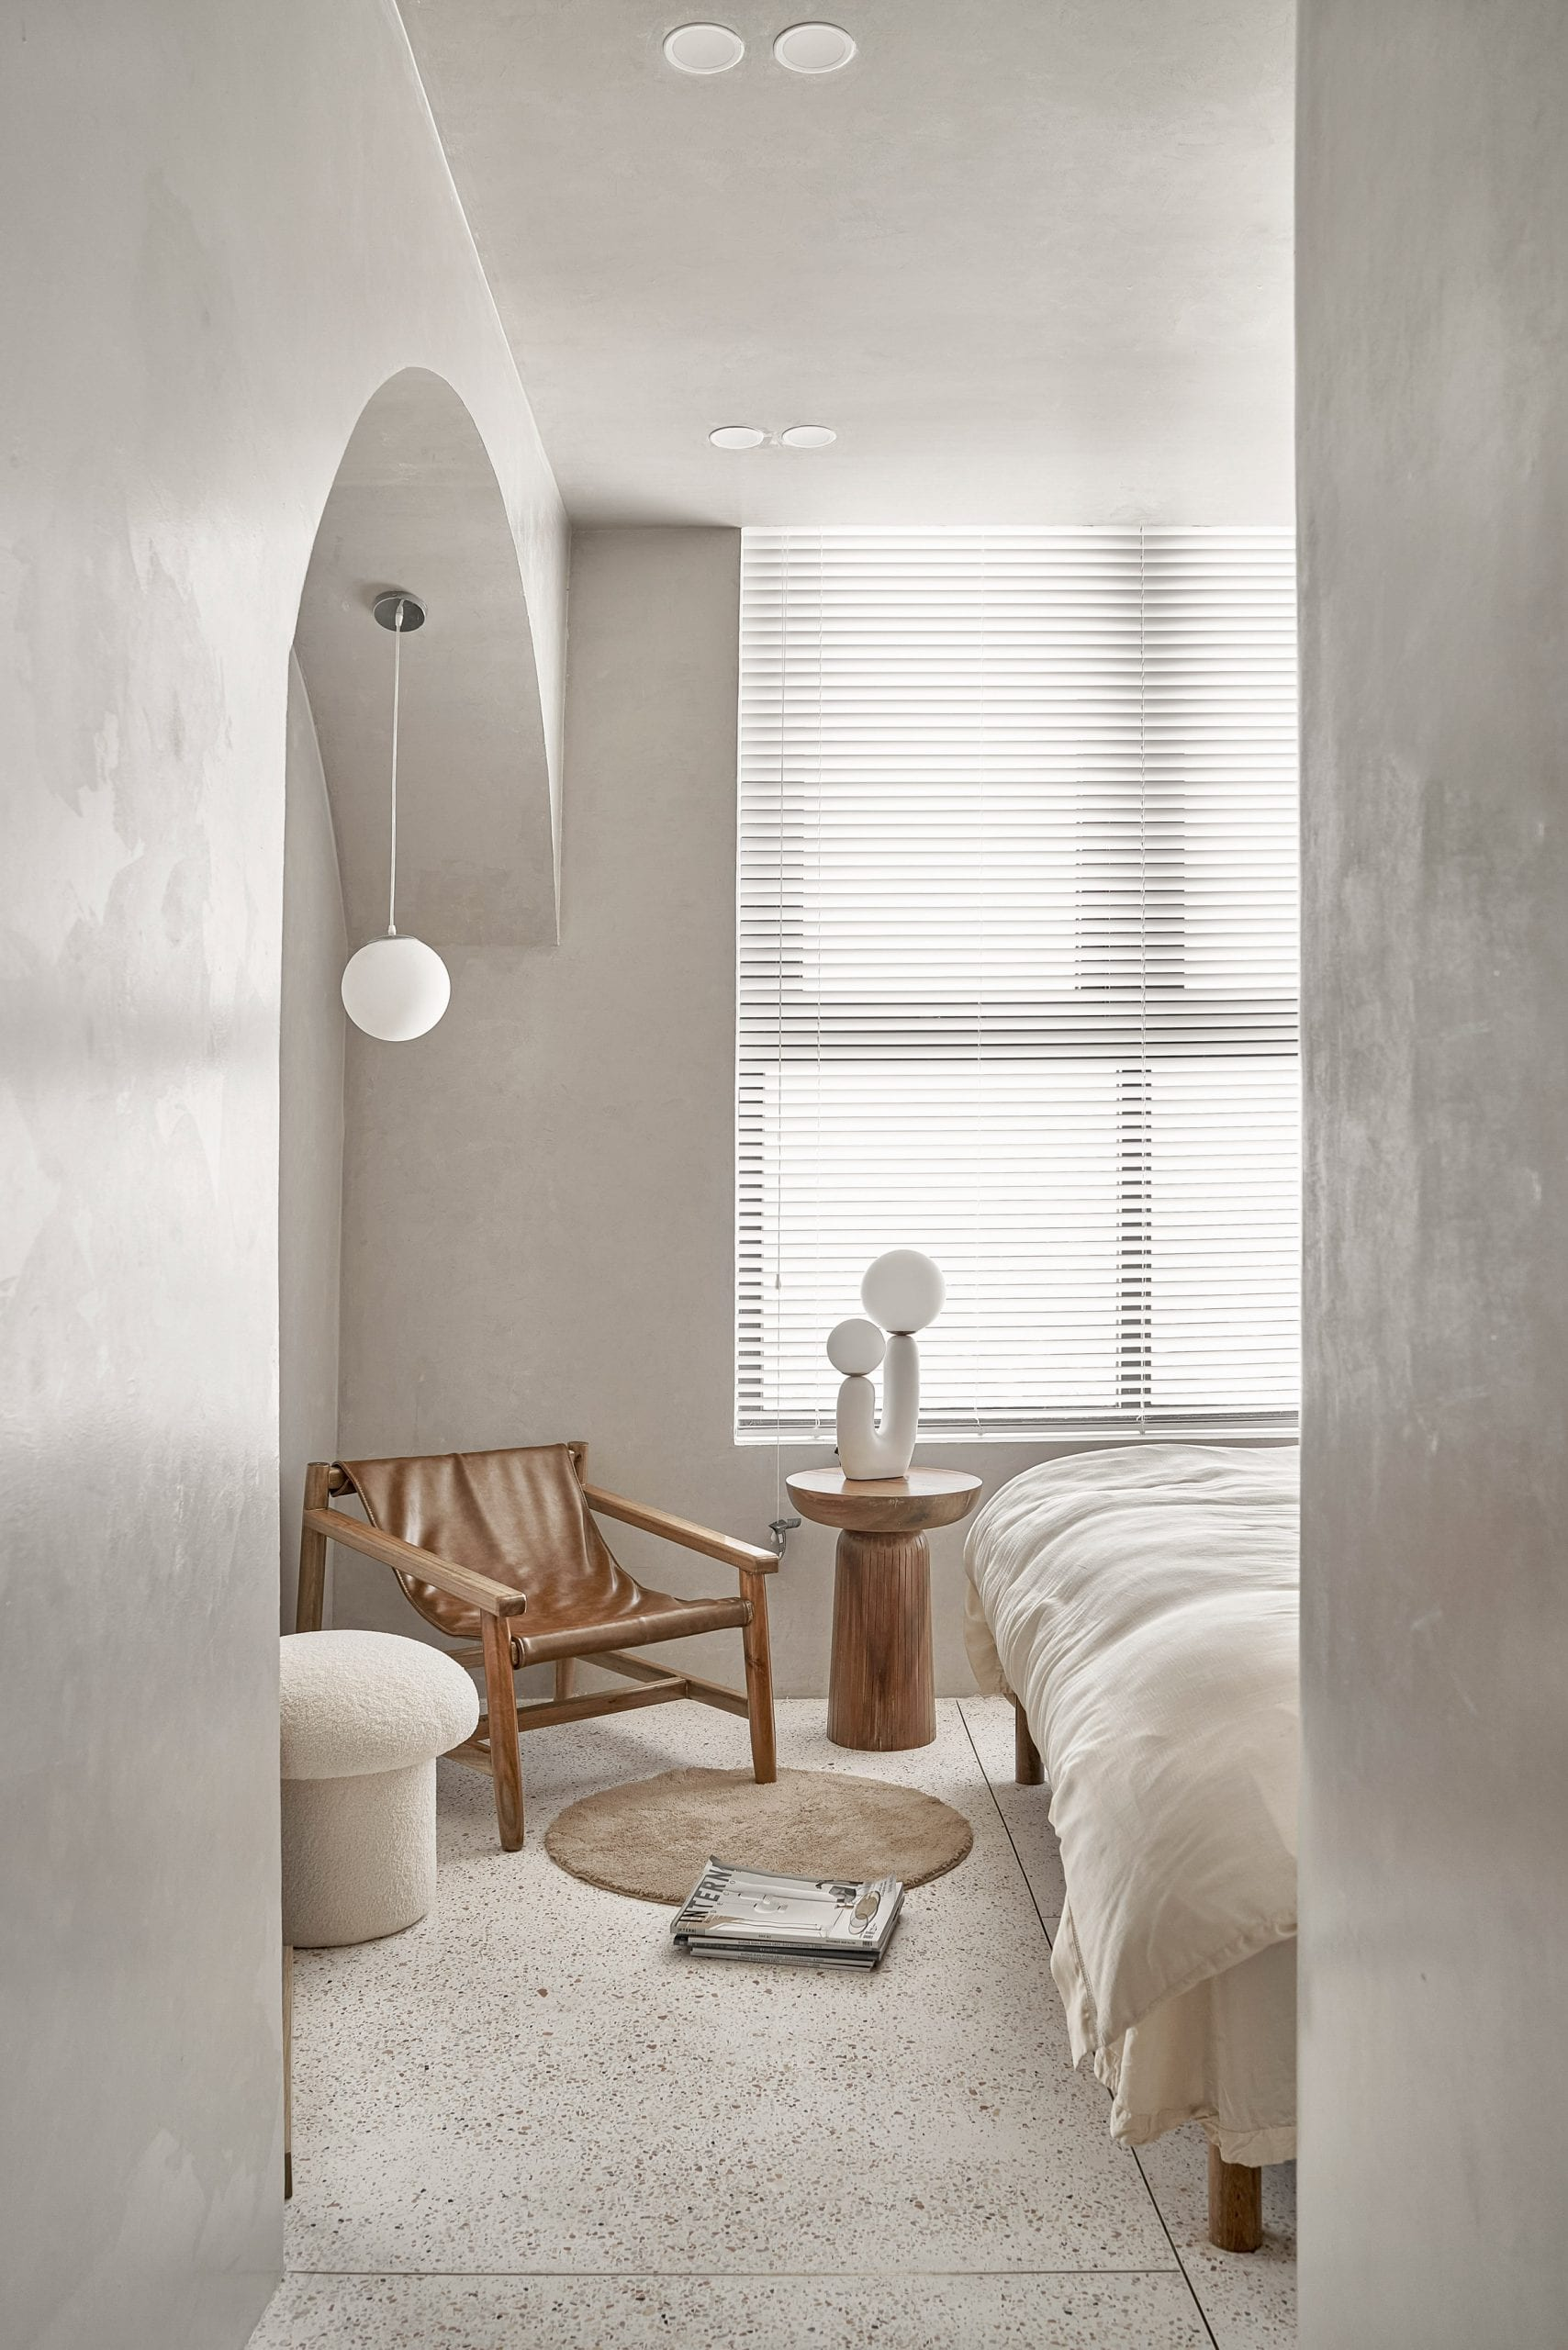 Terrazzo was used in the bedroom of the apartment